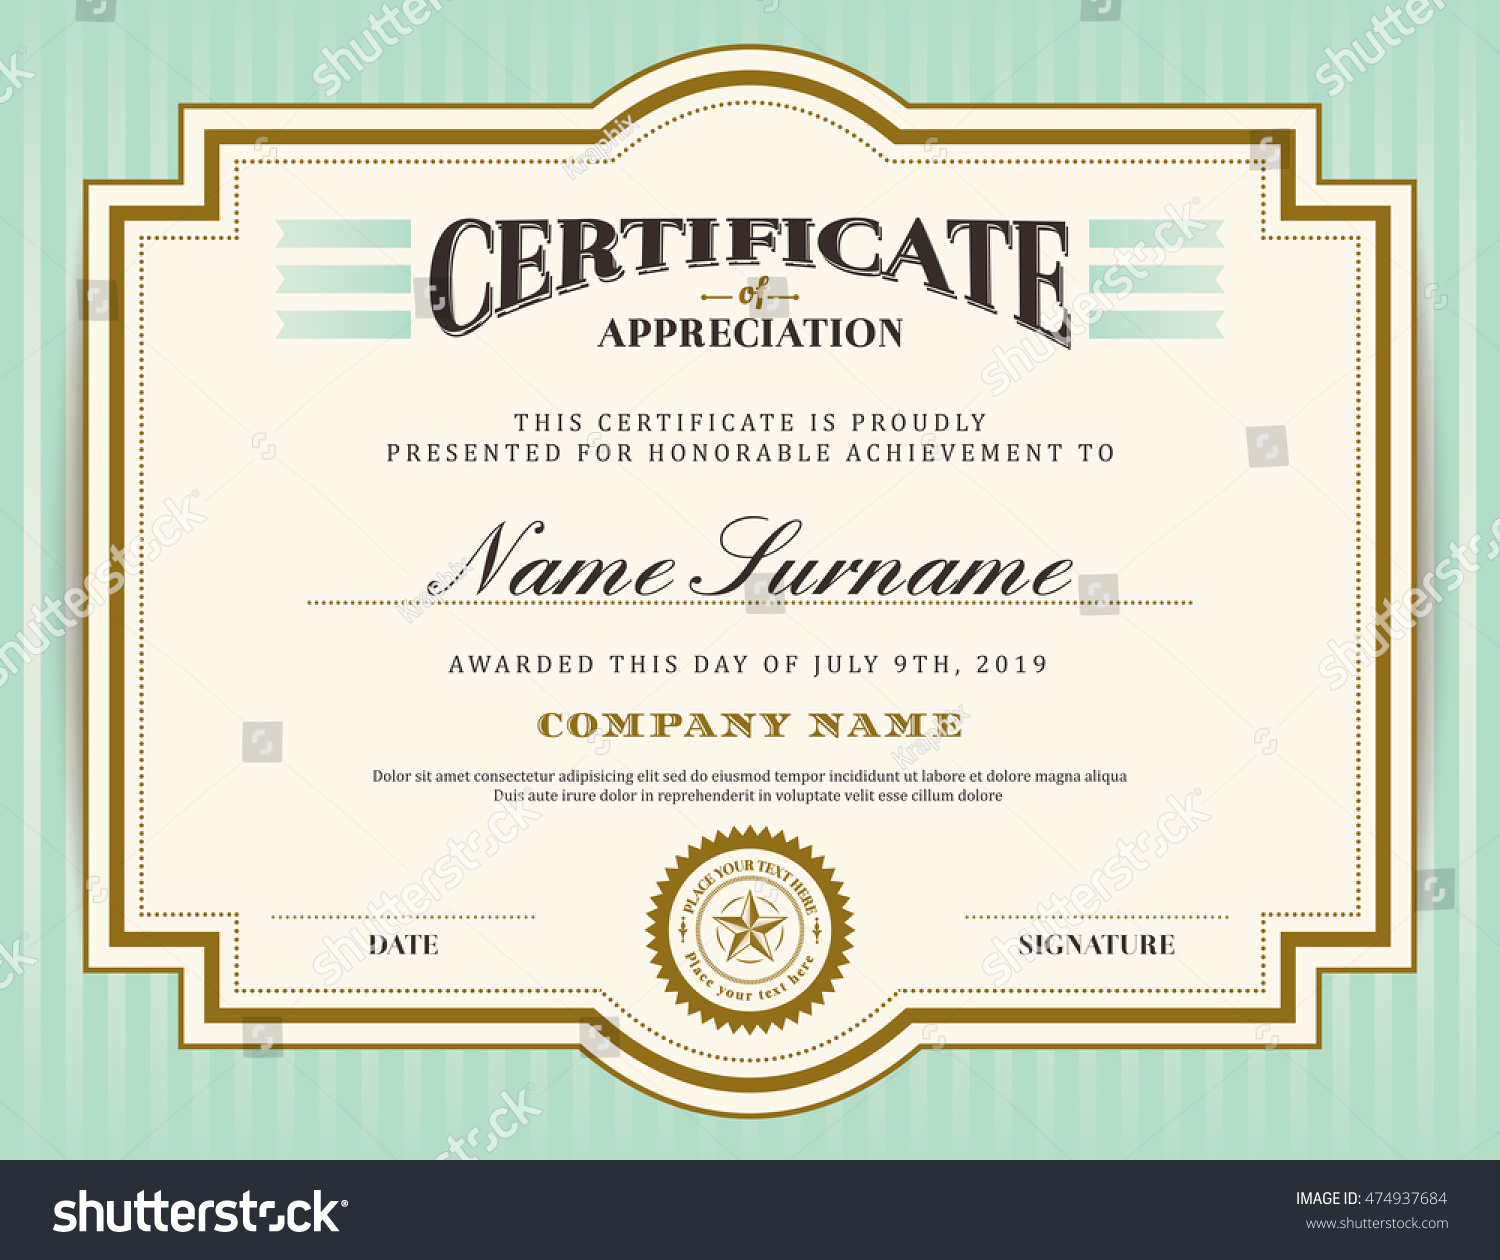 certificate frame template - vintage retro border frame certificate background stock